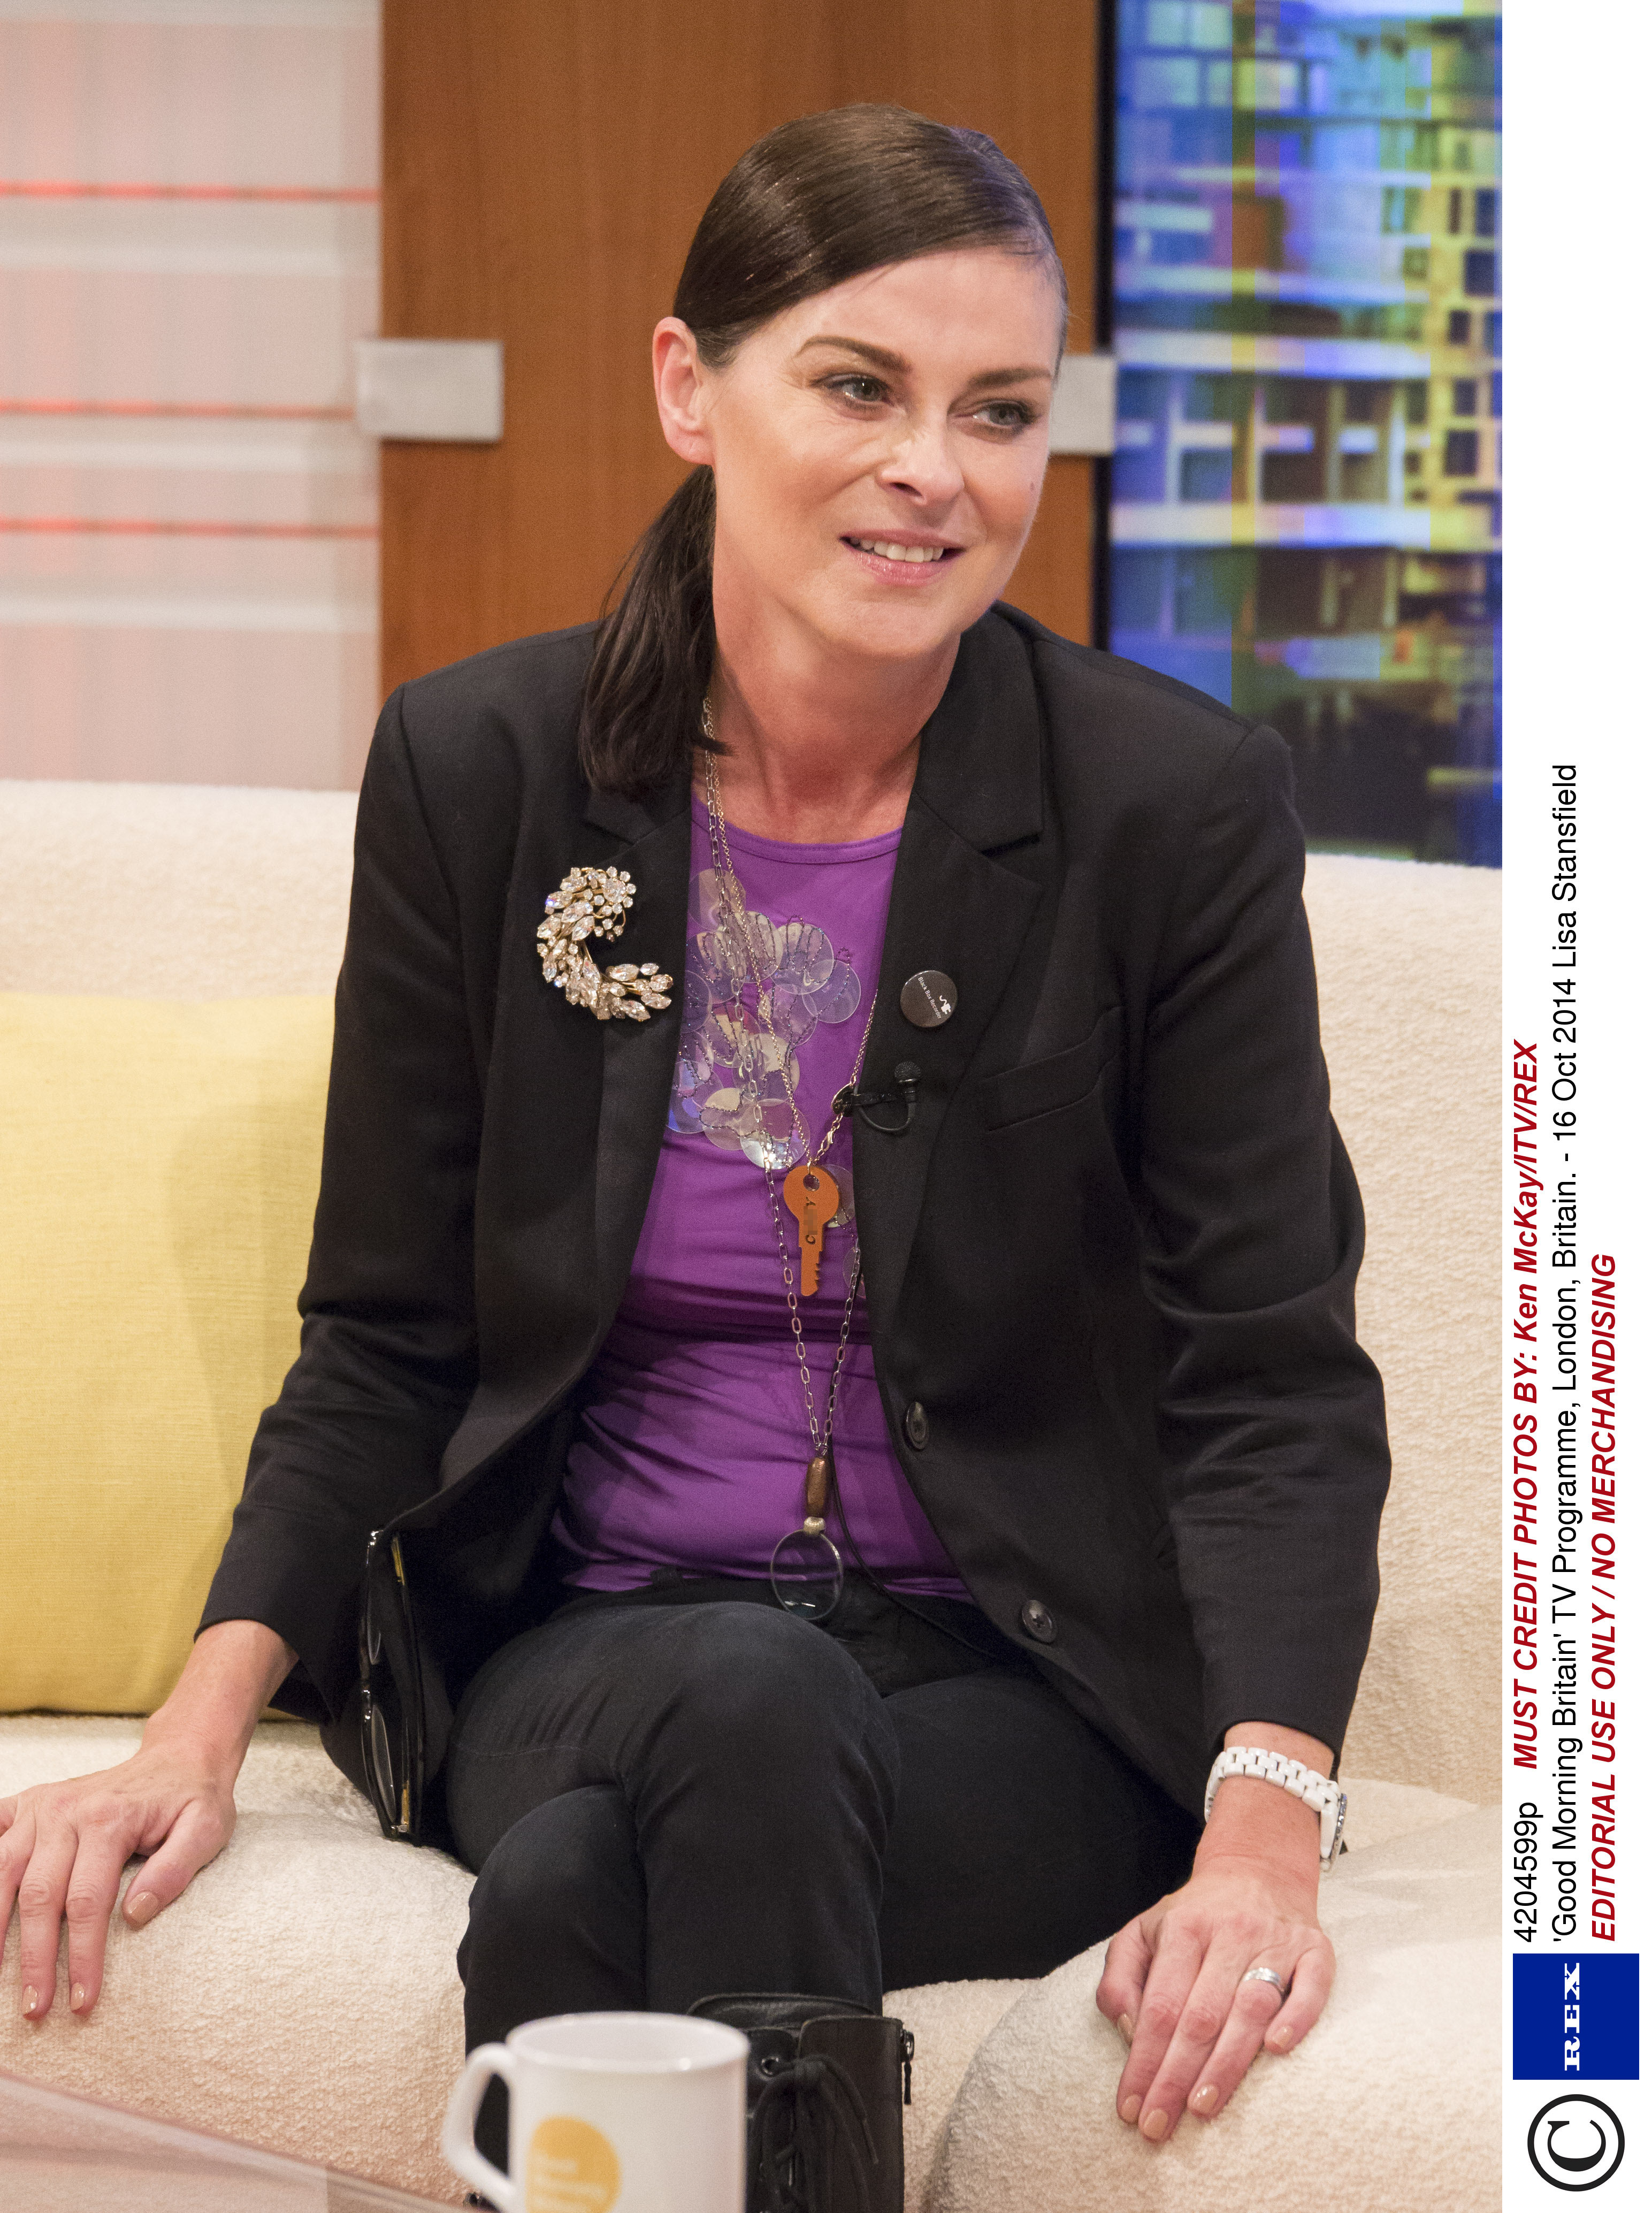 lisa stansfield - photo #36